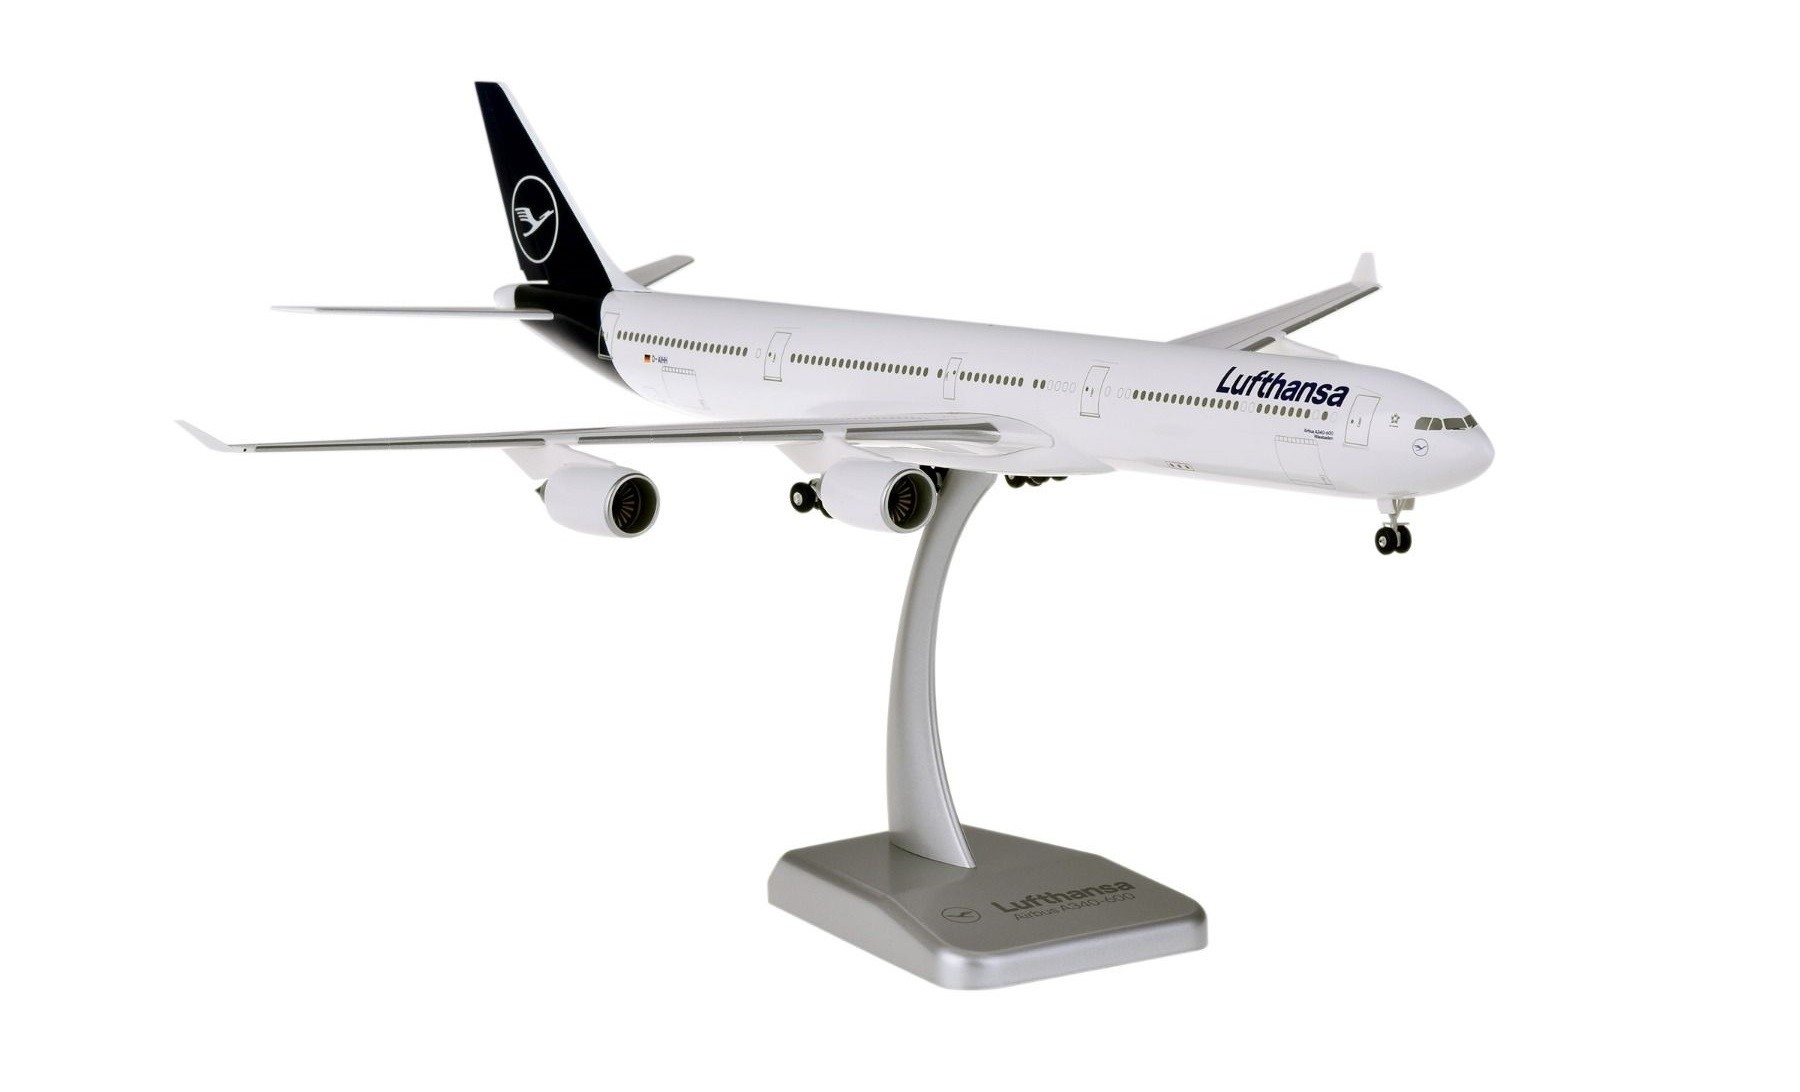 Lufthansa New Livery Airbus A340-600 D-AIHH w/Gears & Stand Hogan HGDLH005 scale 1:200